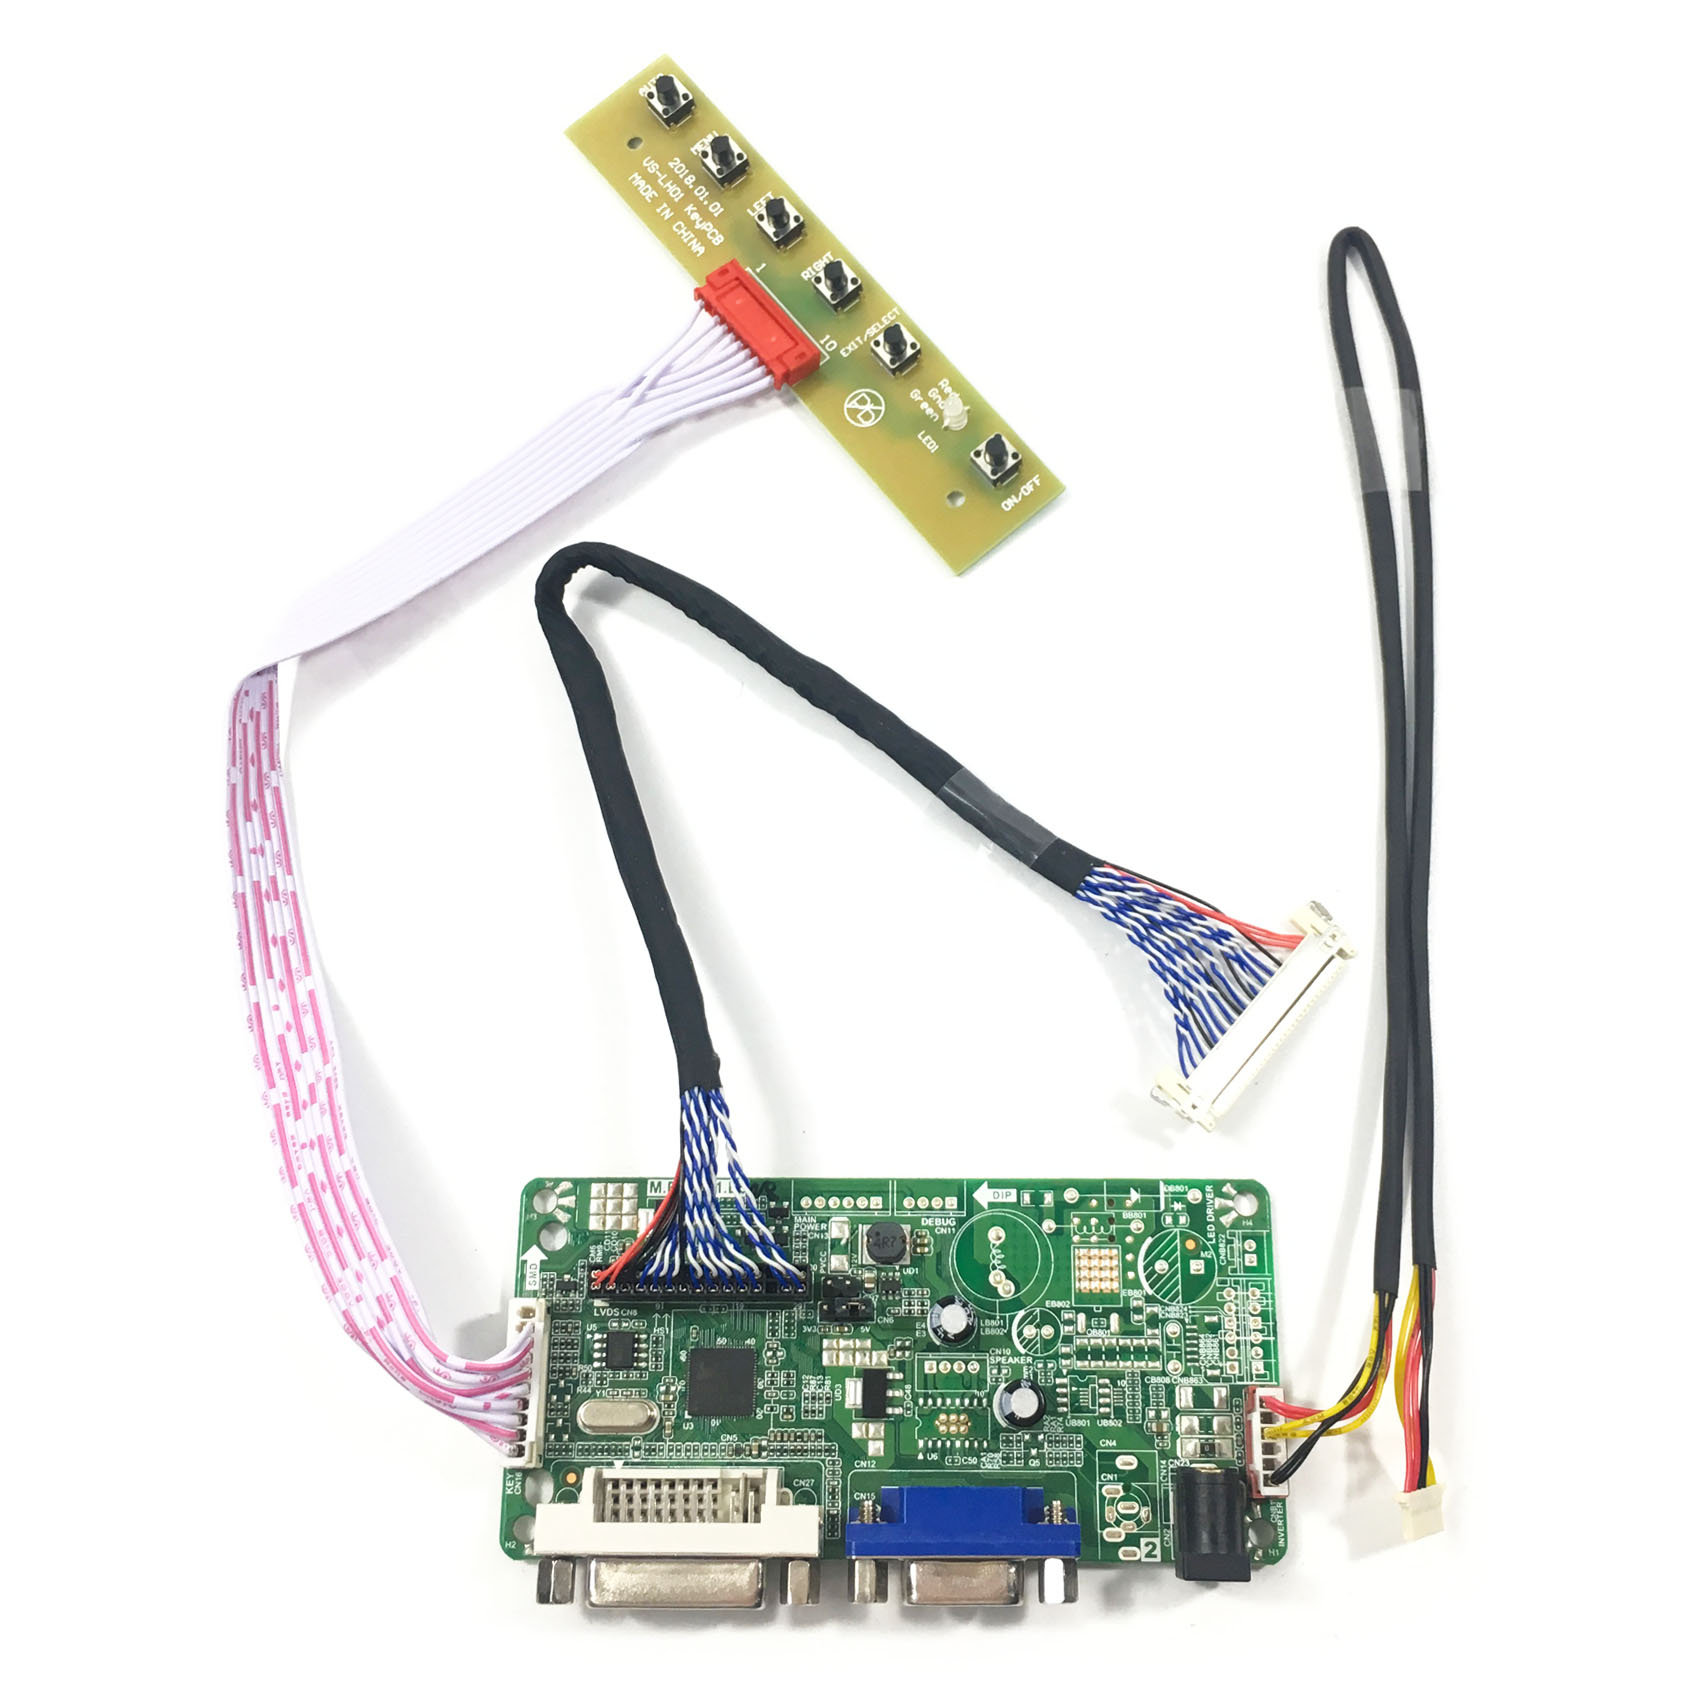 VGA HDMI Control Card for G170EG01 V.1 with LVDS cable G170EG01 V1 Test Board